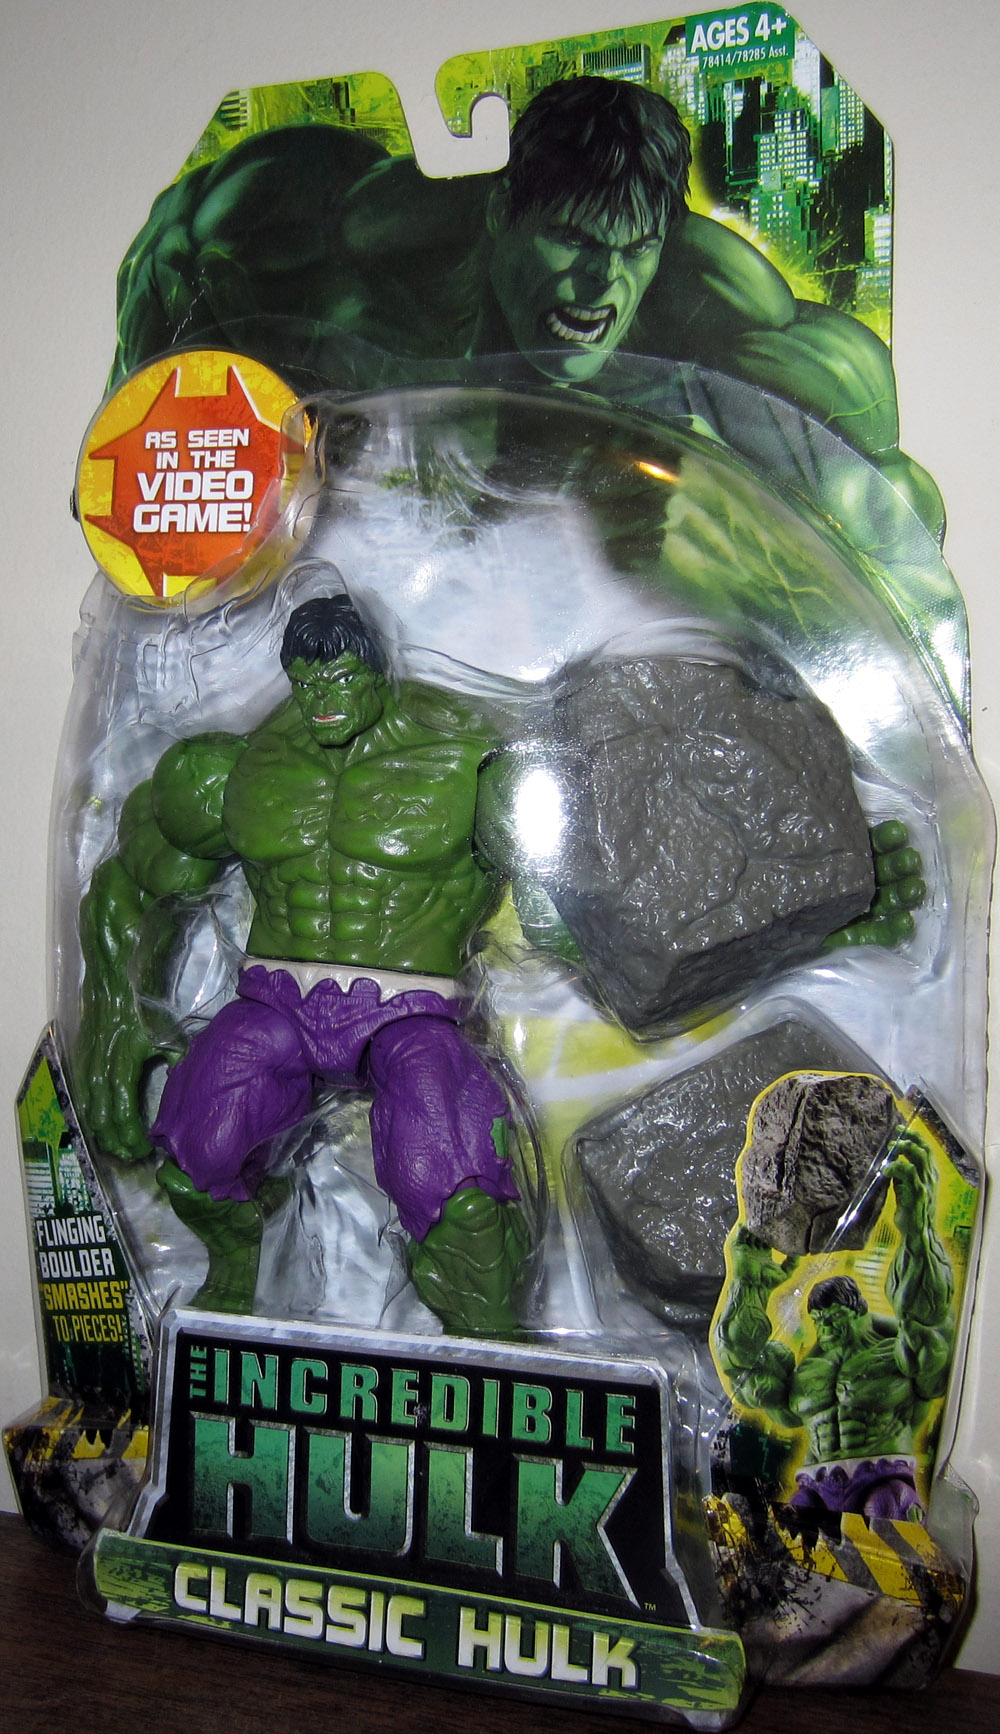 Classic Hulk (as seen in the video game)